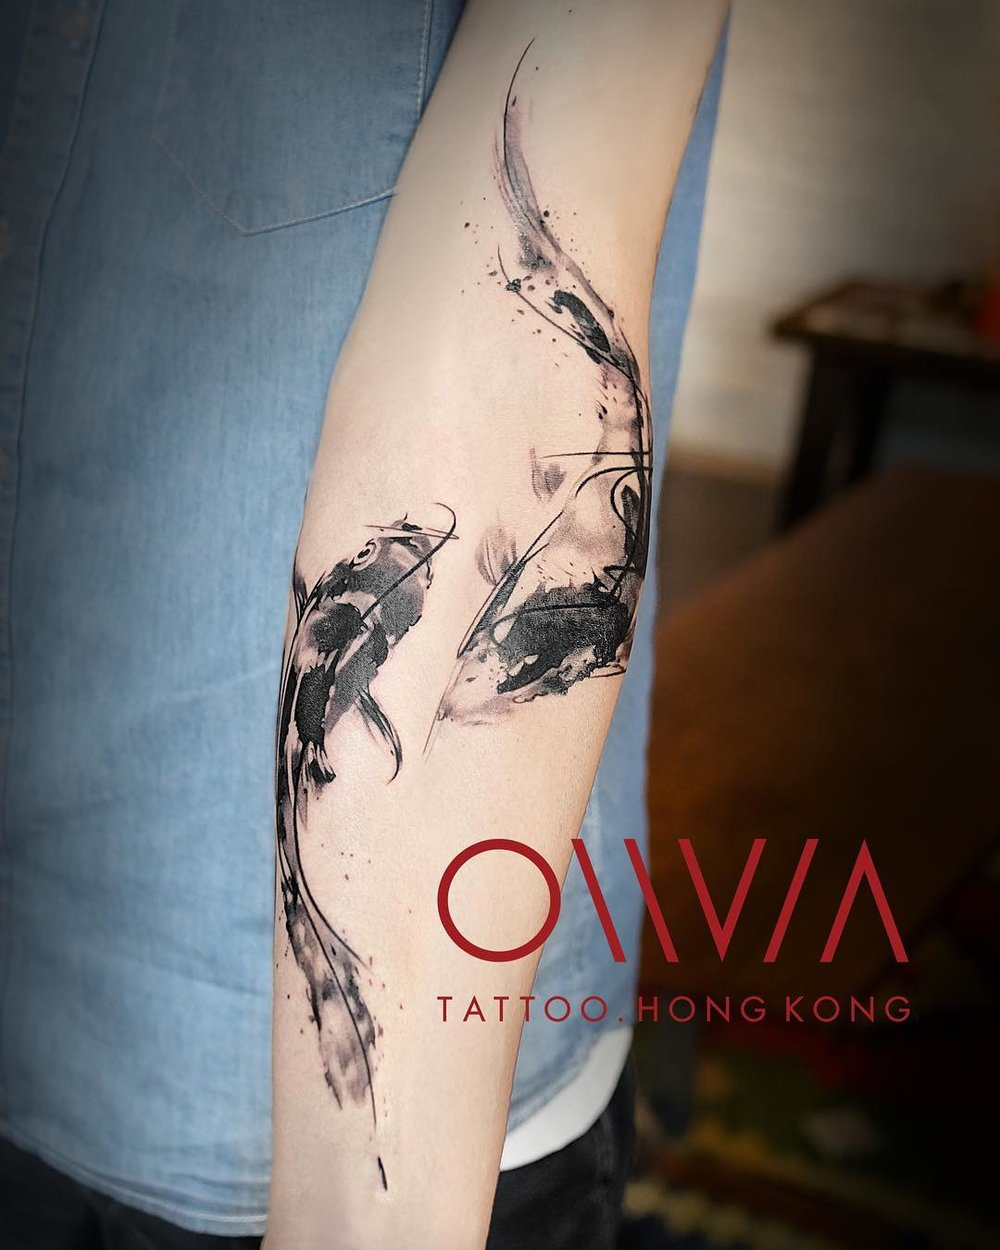 2018-fridays-tattoo-hong-kong-olivia-brush-koi.jpg